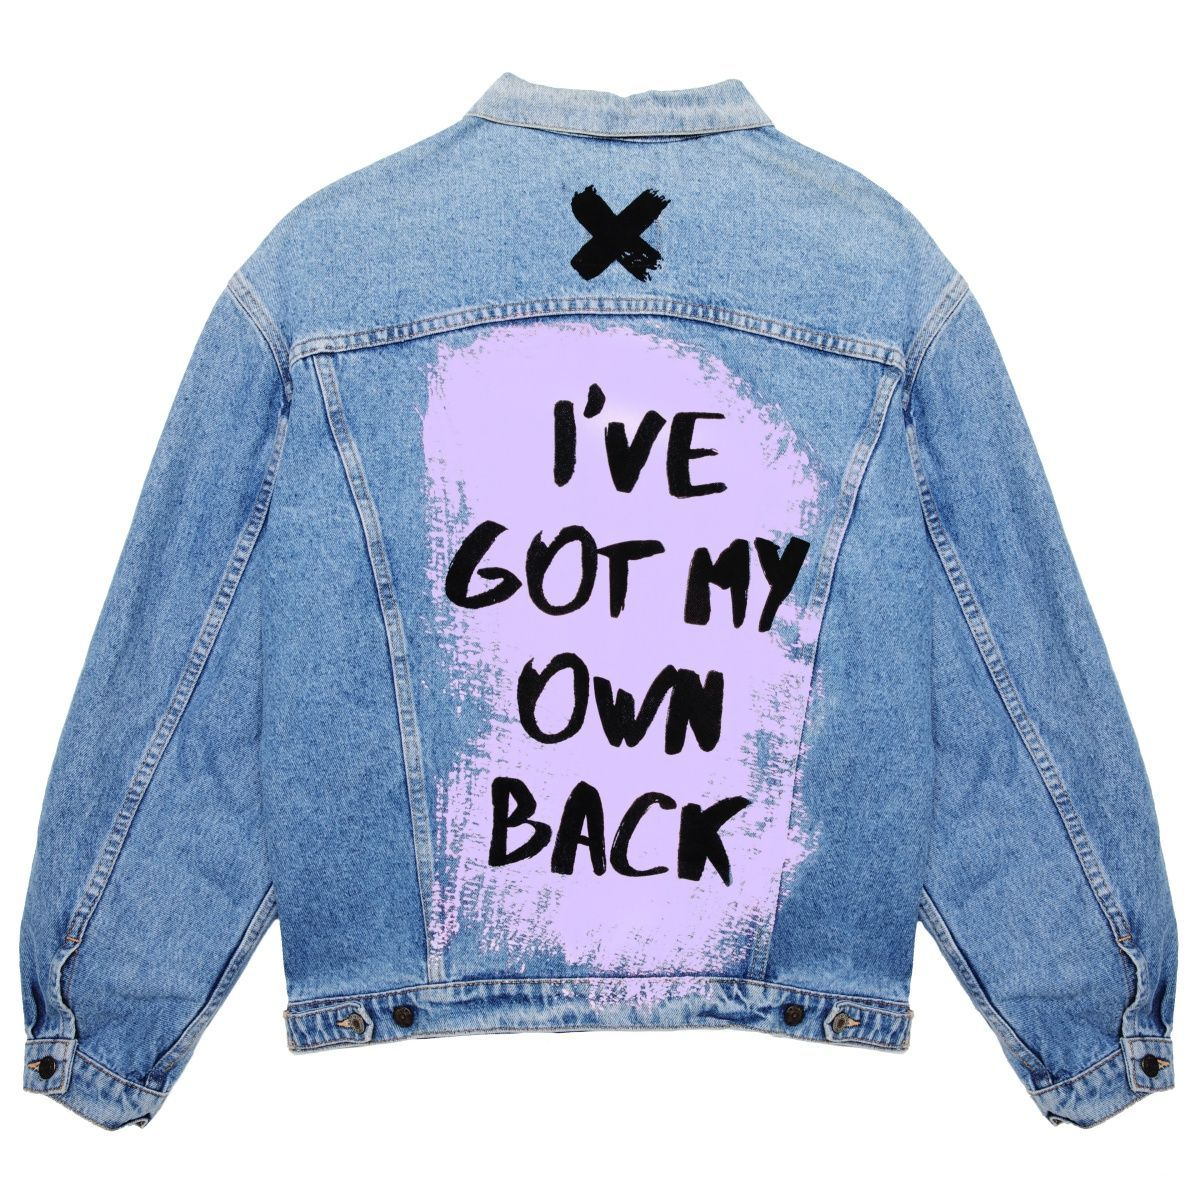 My Account Creoate At Some Point In Time Somebody Out There May Have Made You Believe That In Order T Jean Jacket Outfits Denim Jacket Diy Paint Diy Jacket [ 1200 x 1200 Pixel ]